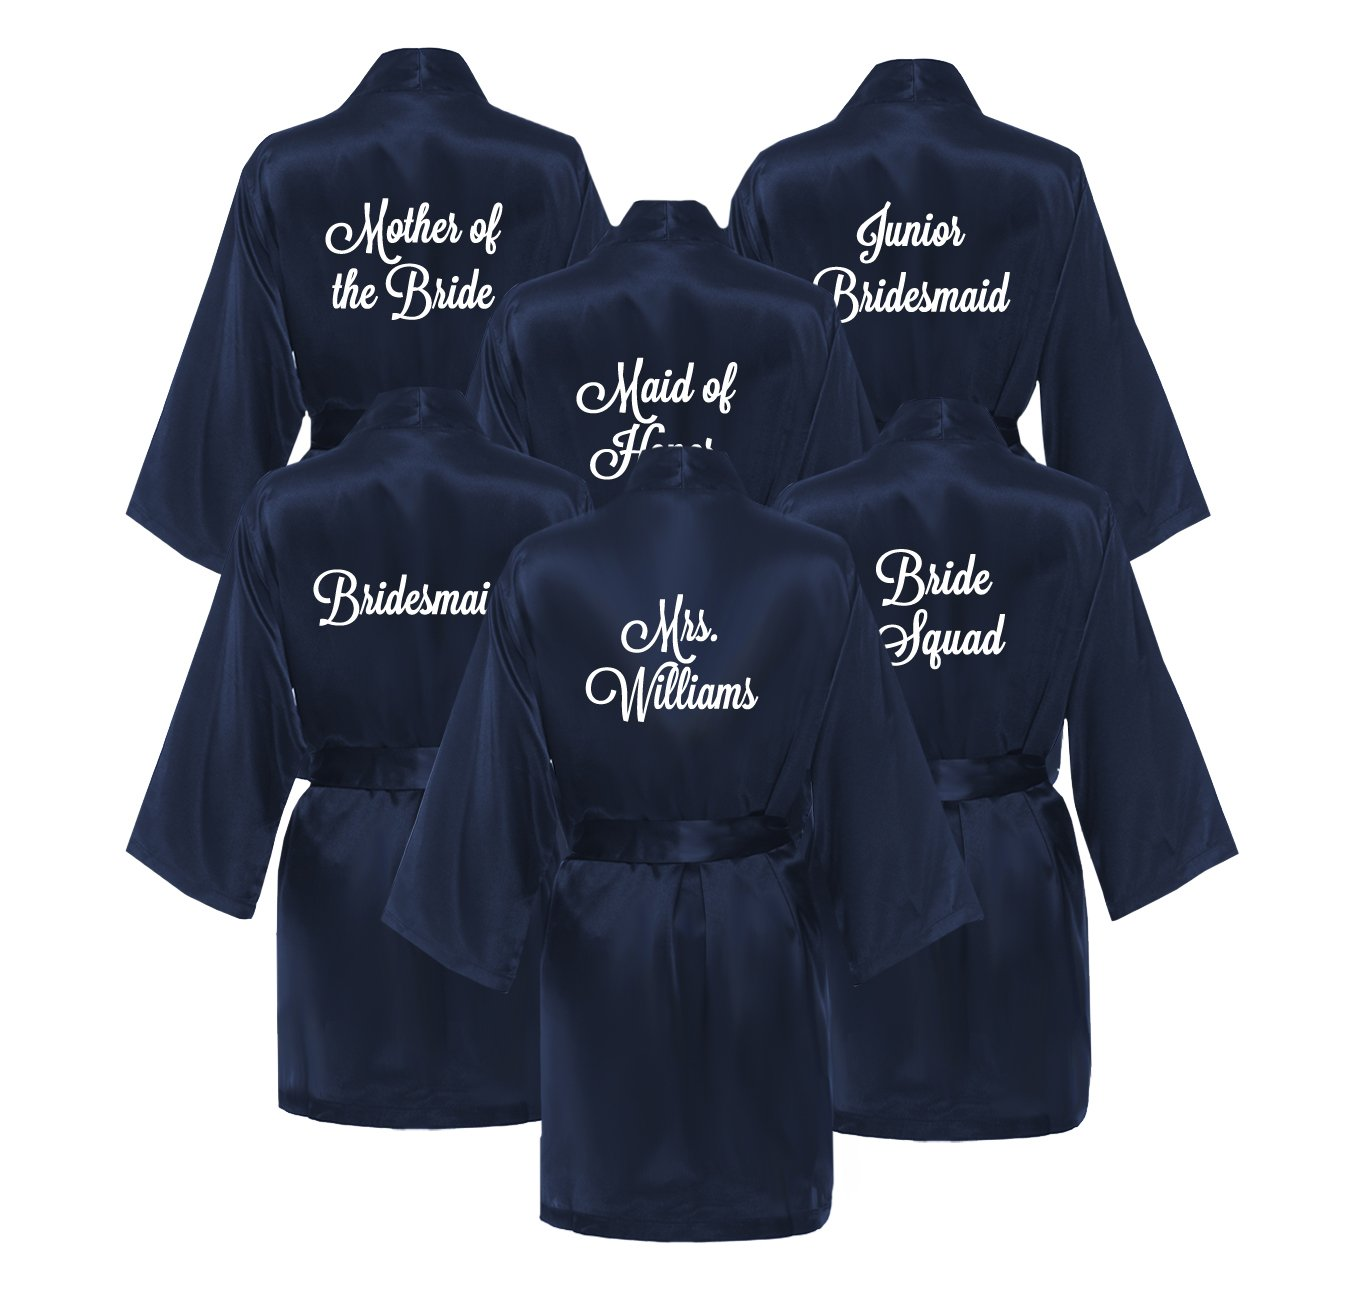 Set of Bridesmaid Robes - NAVY (Set of 6 Robes)